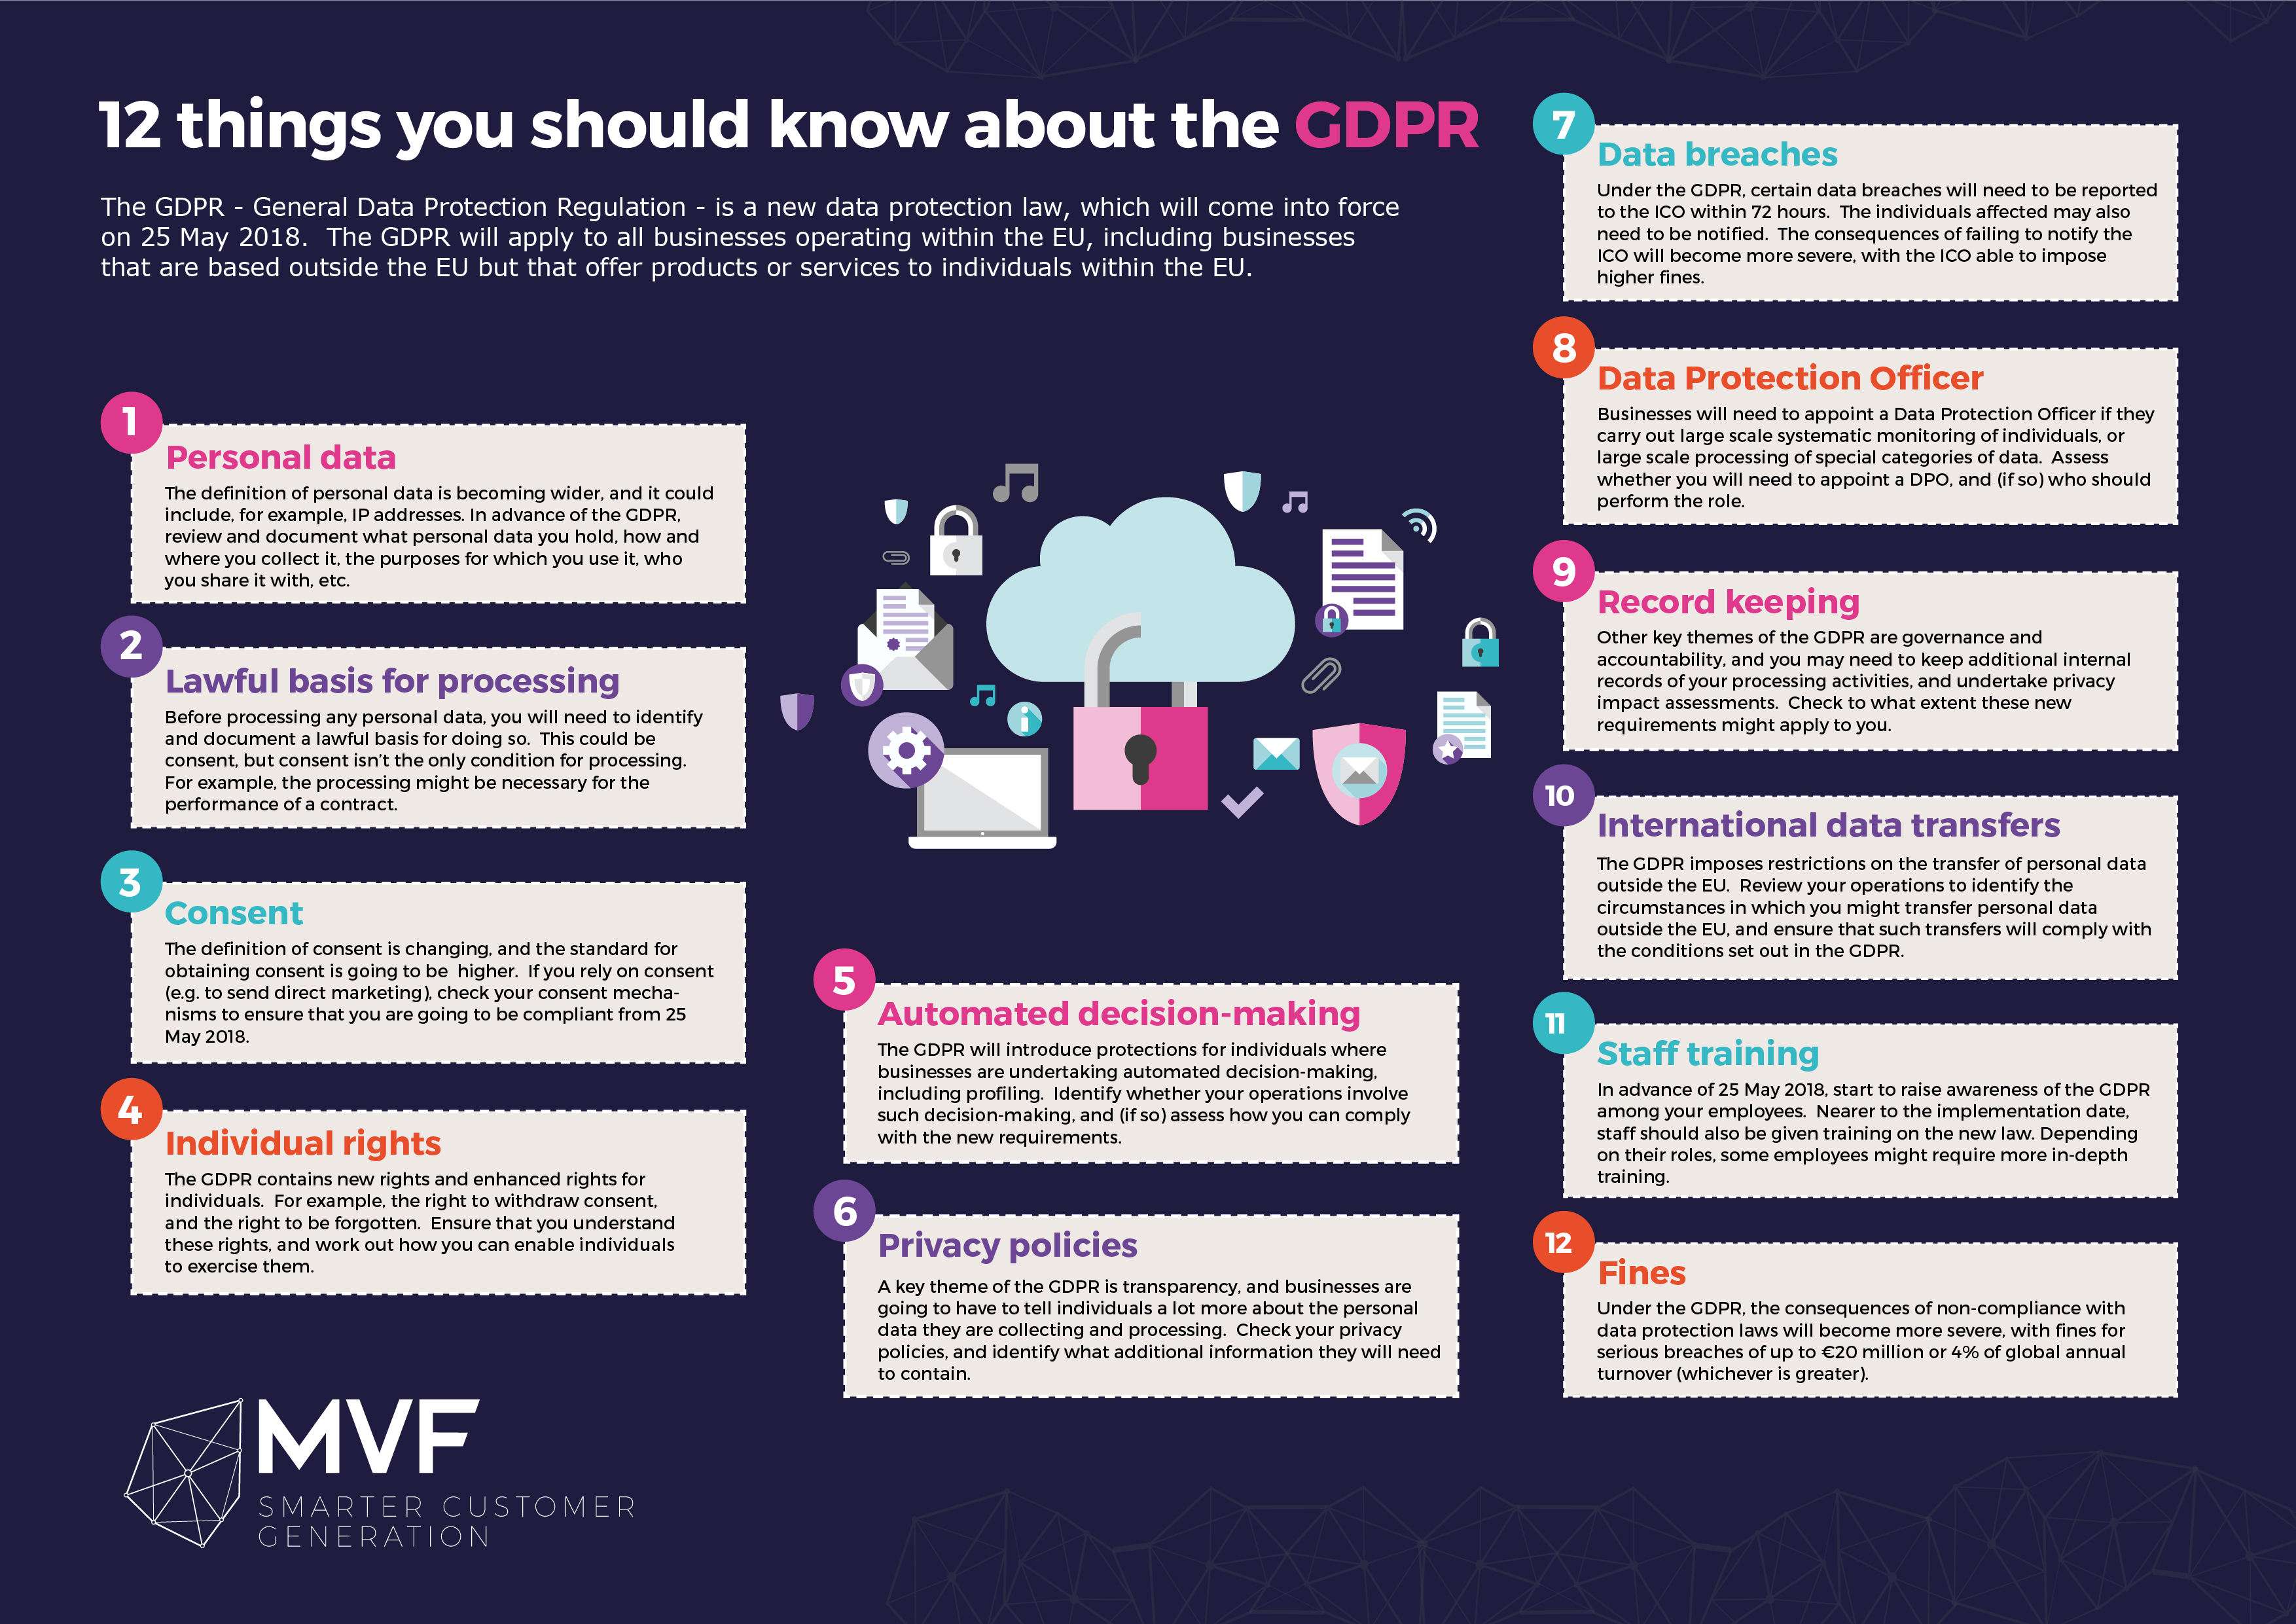 GDPR: 12 Things You Should Know For 2018